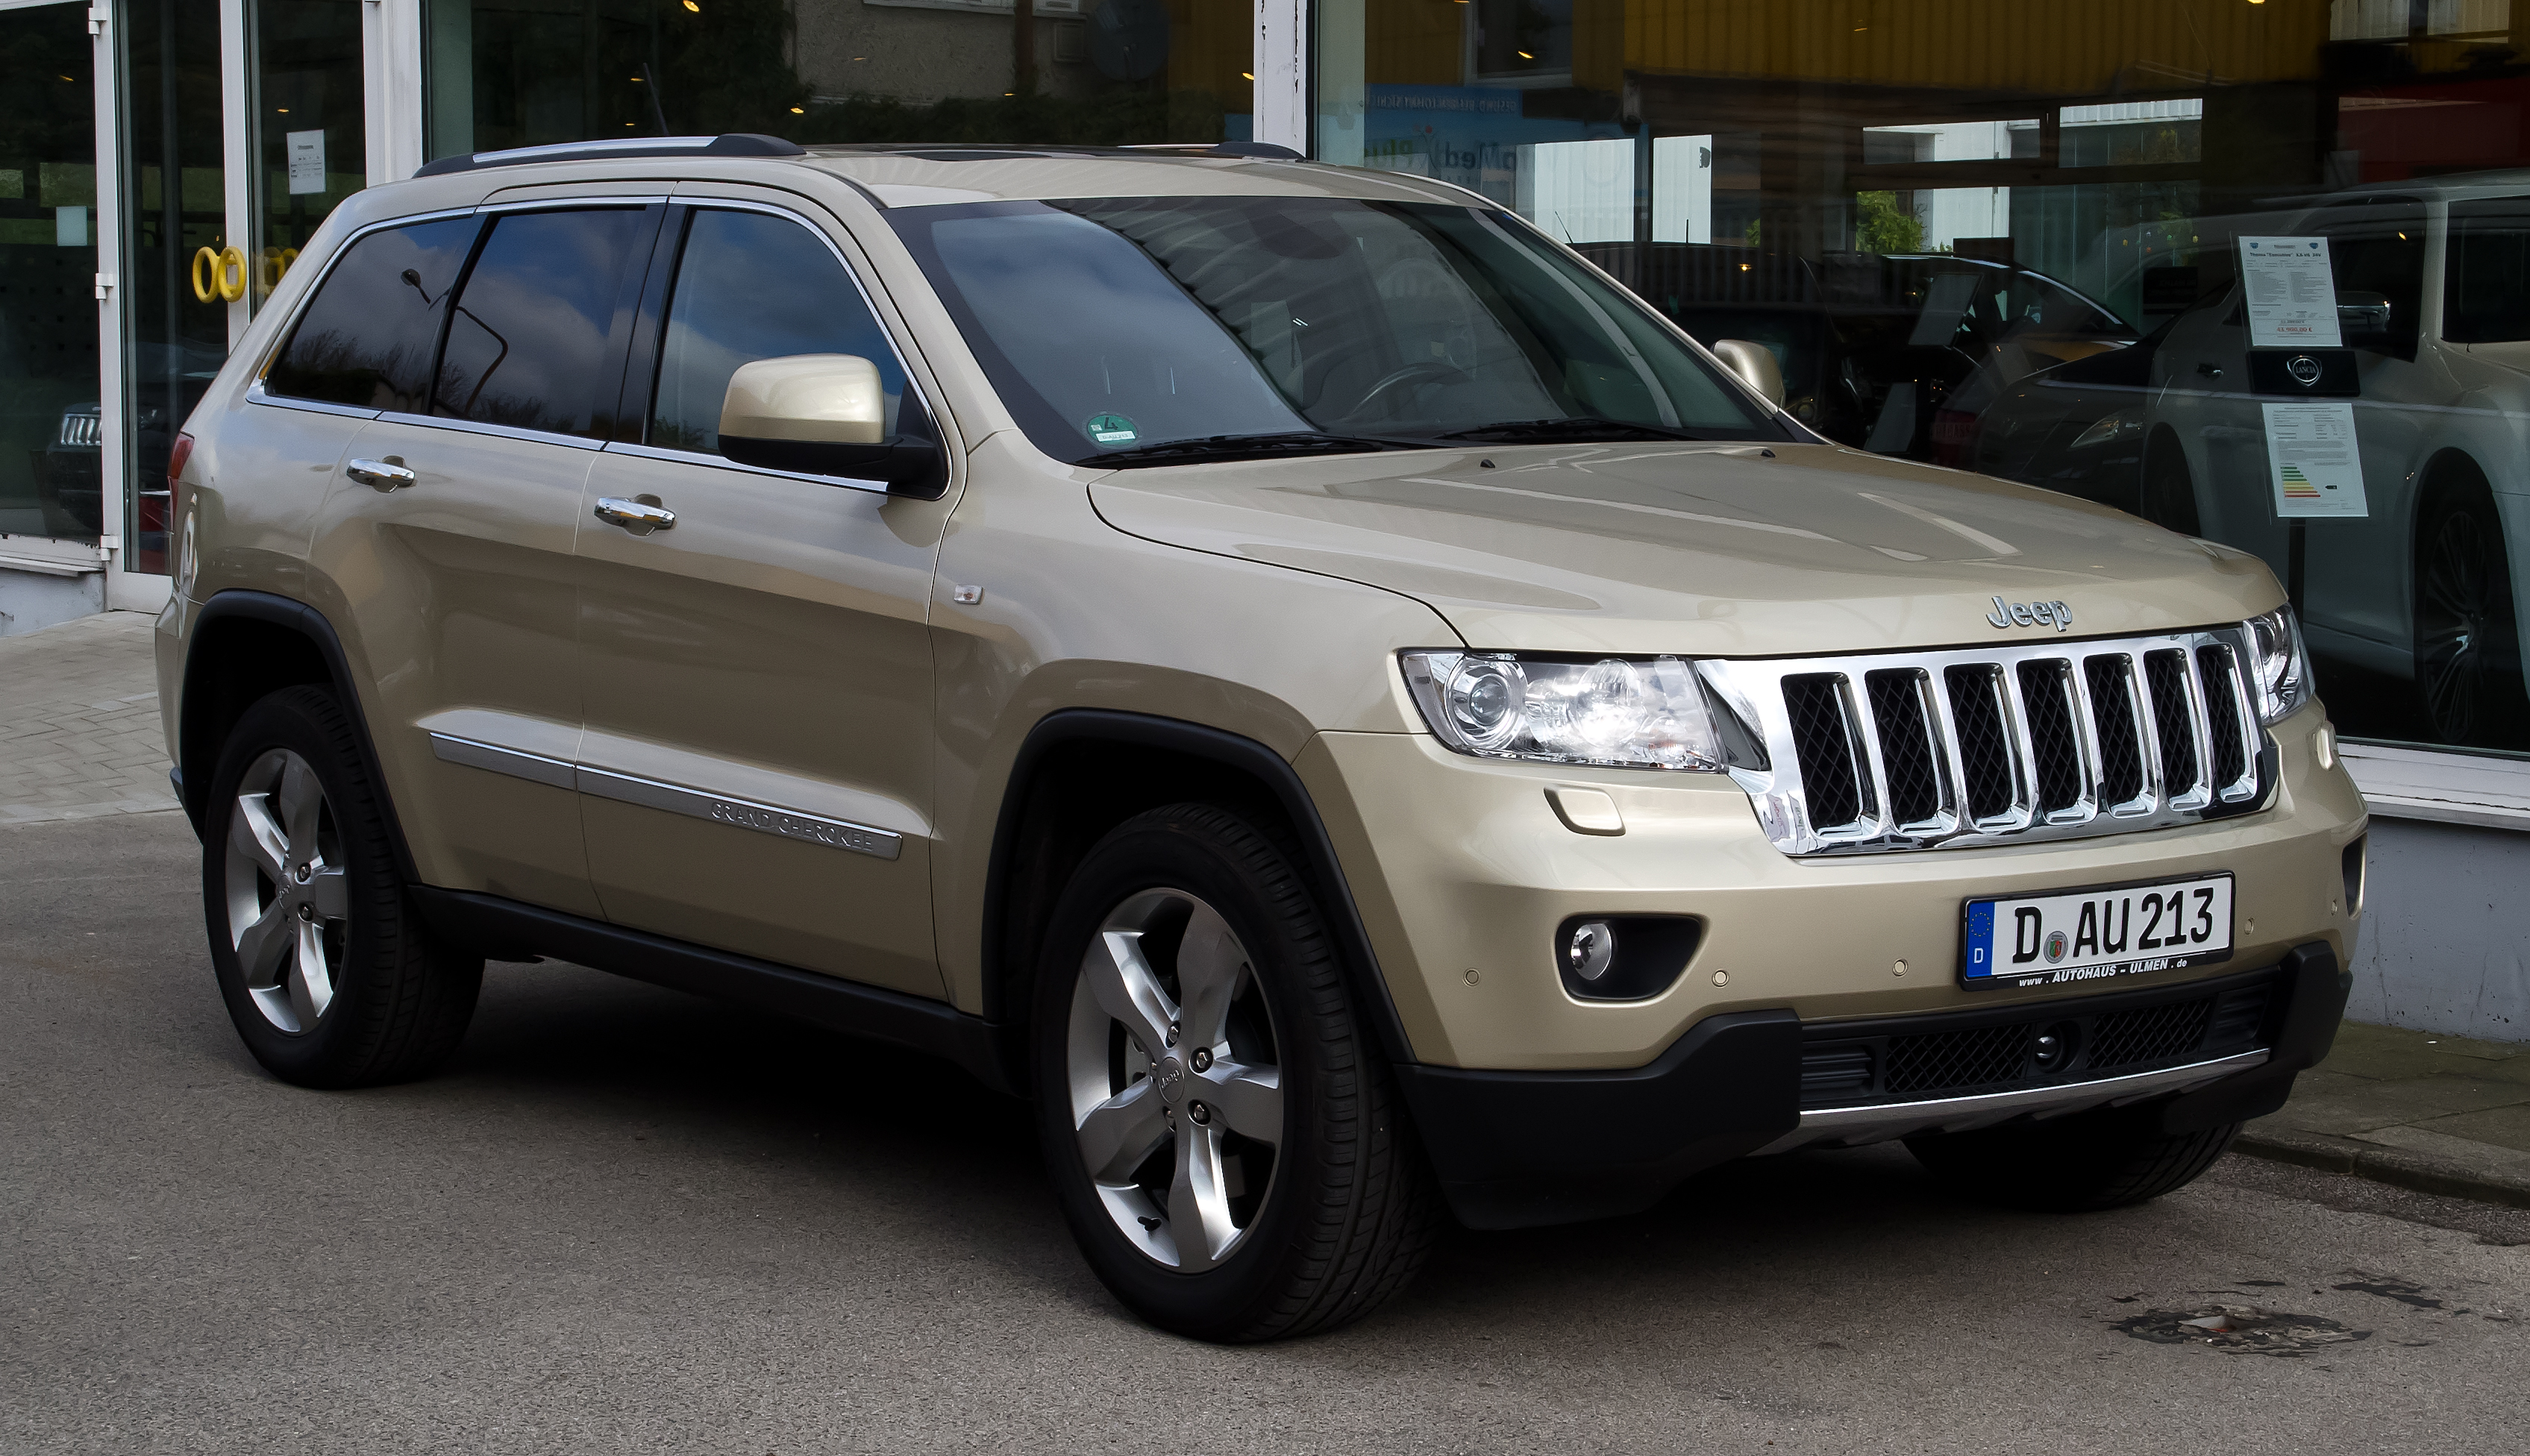 jeep grand cherokee – wikipedia